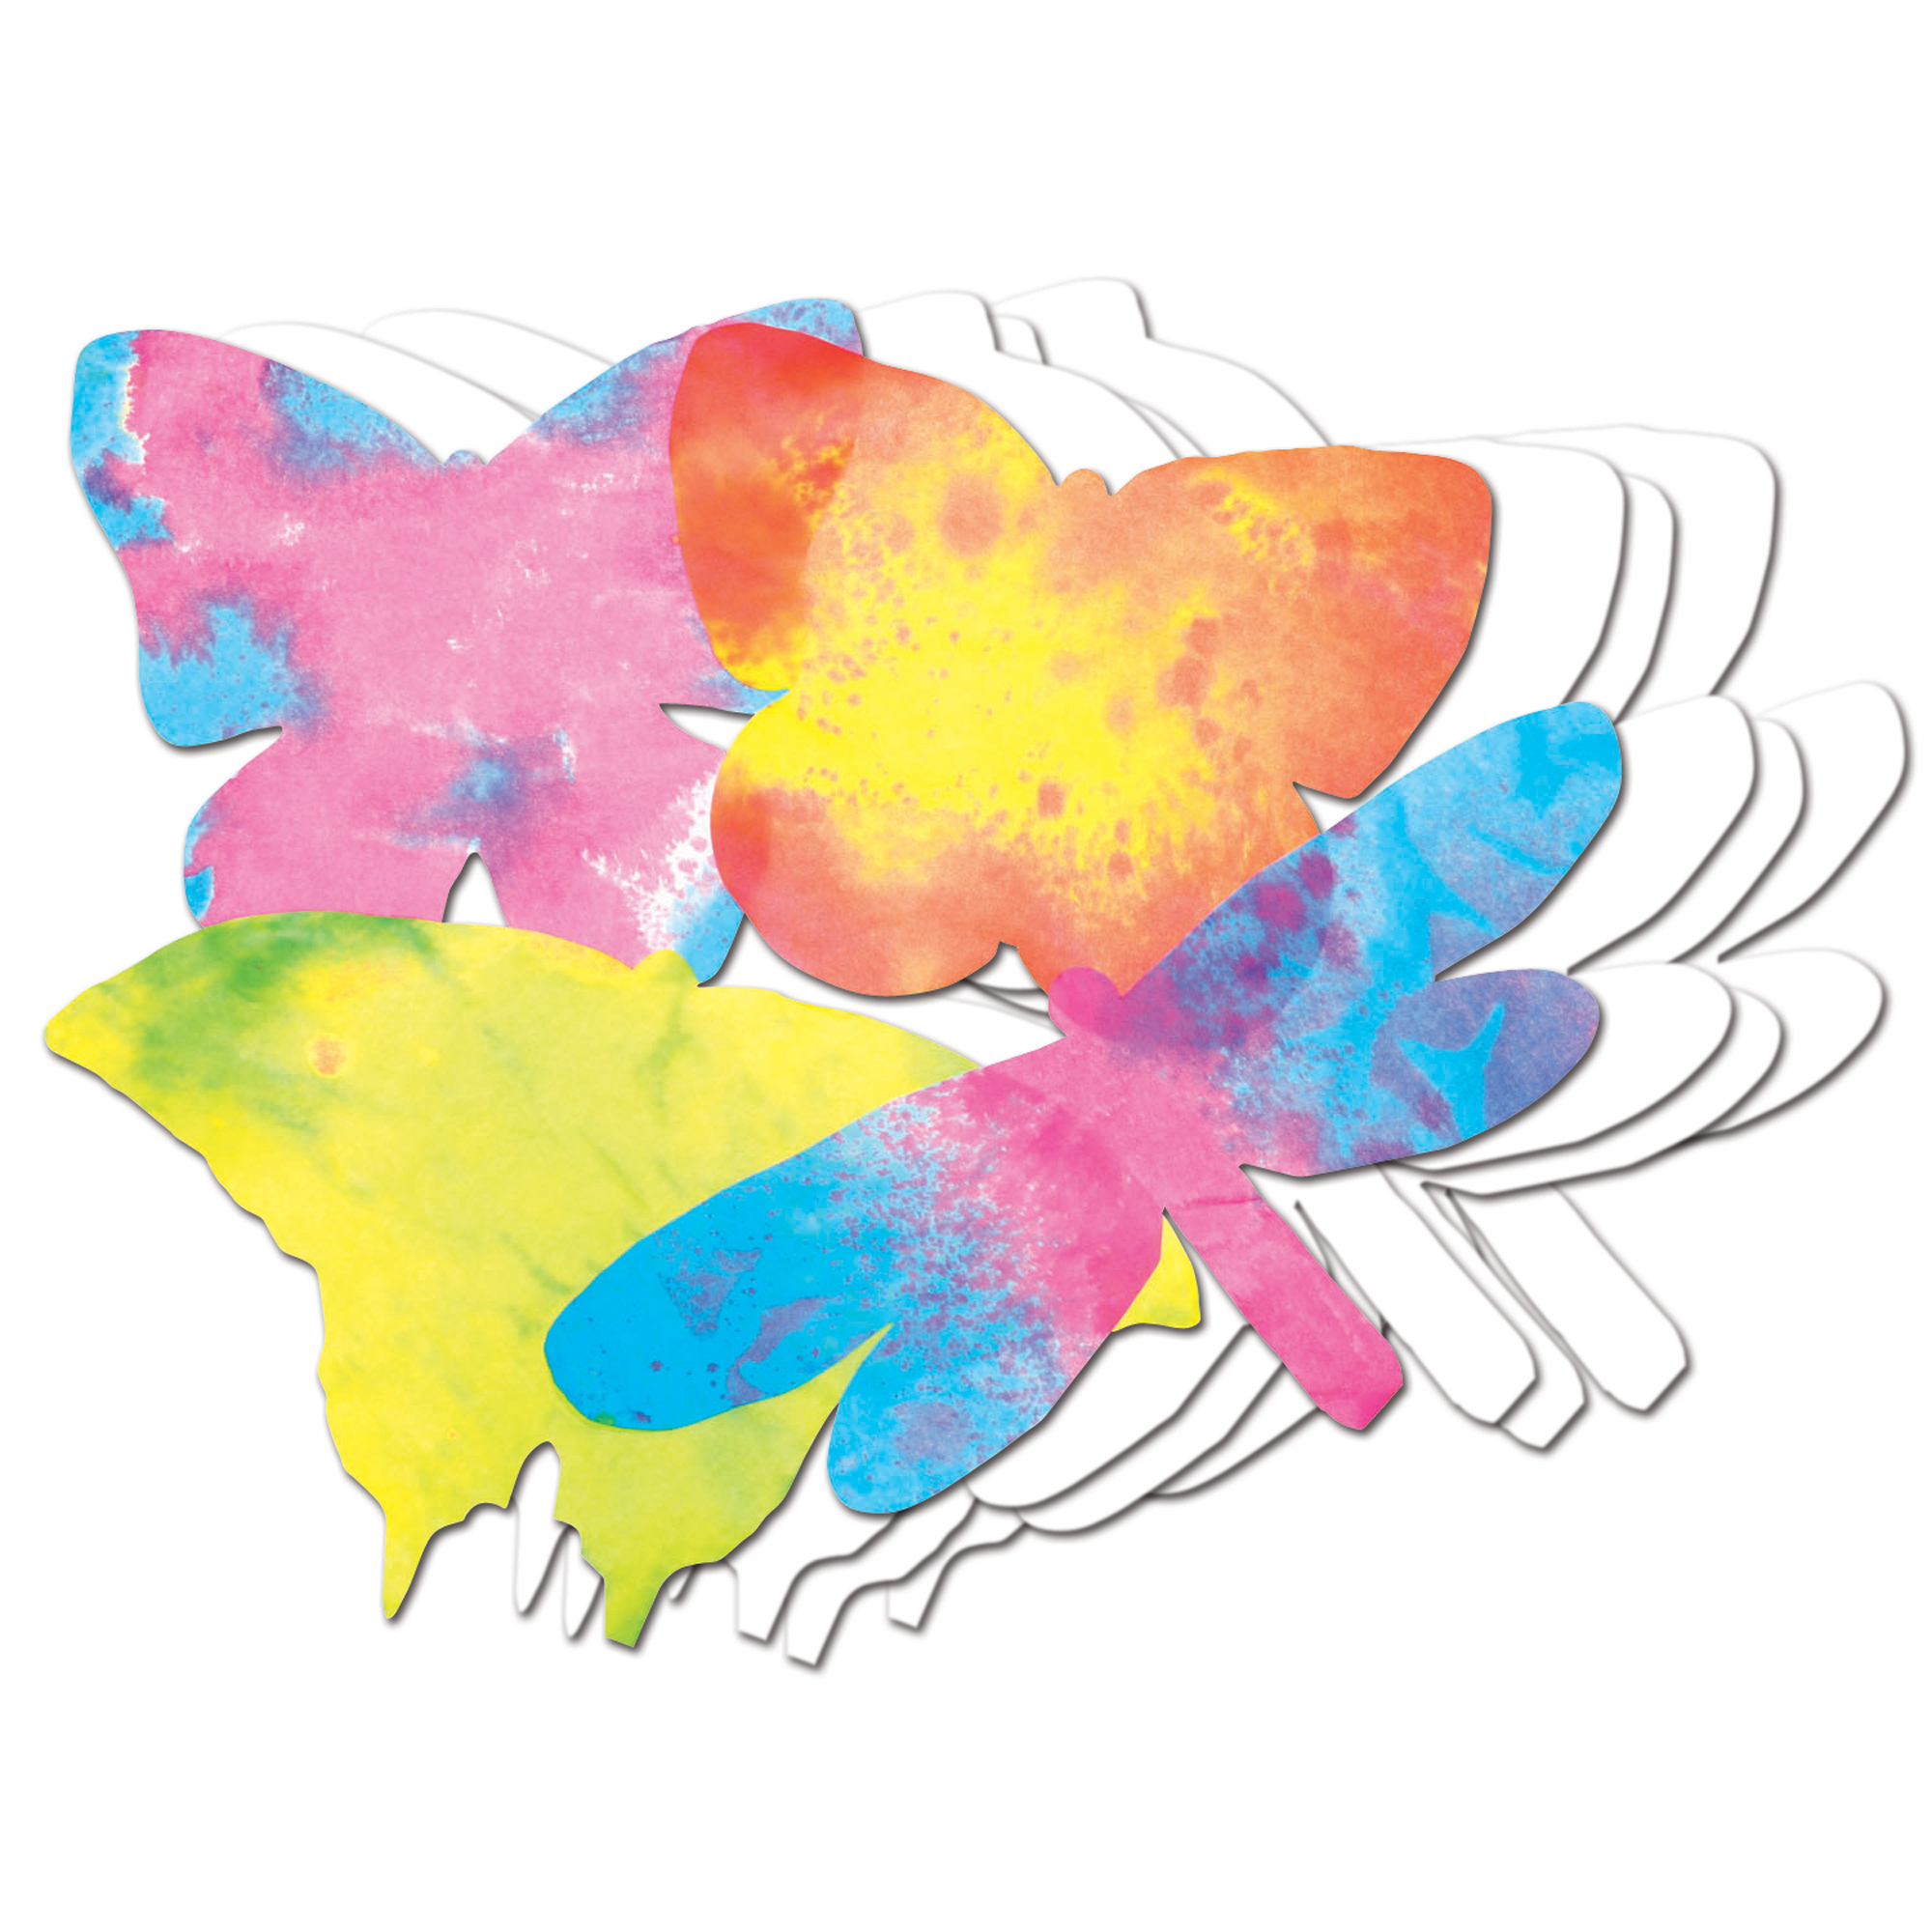 "Roylco® Color Diffusing Paper Butterflies, 9"" x 7"", 48 per pack, Set of 3 packs"